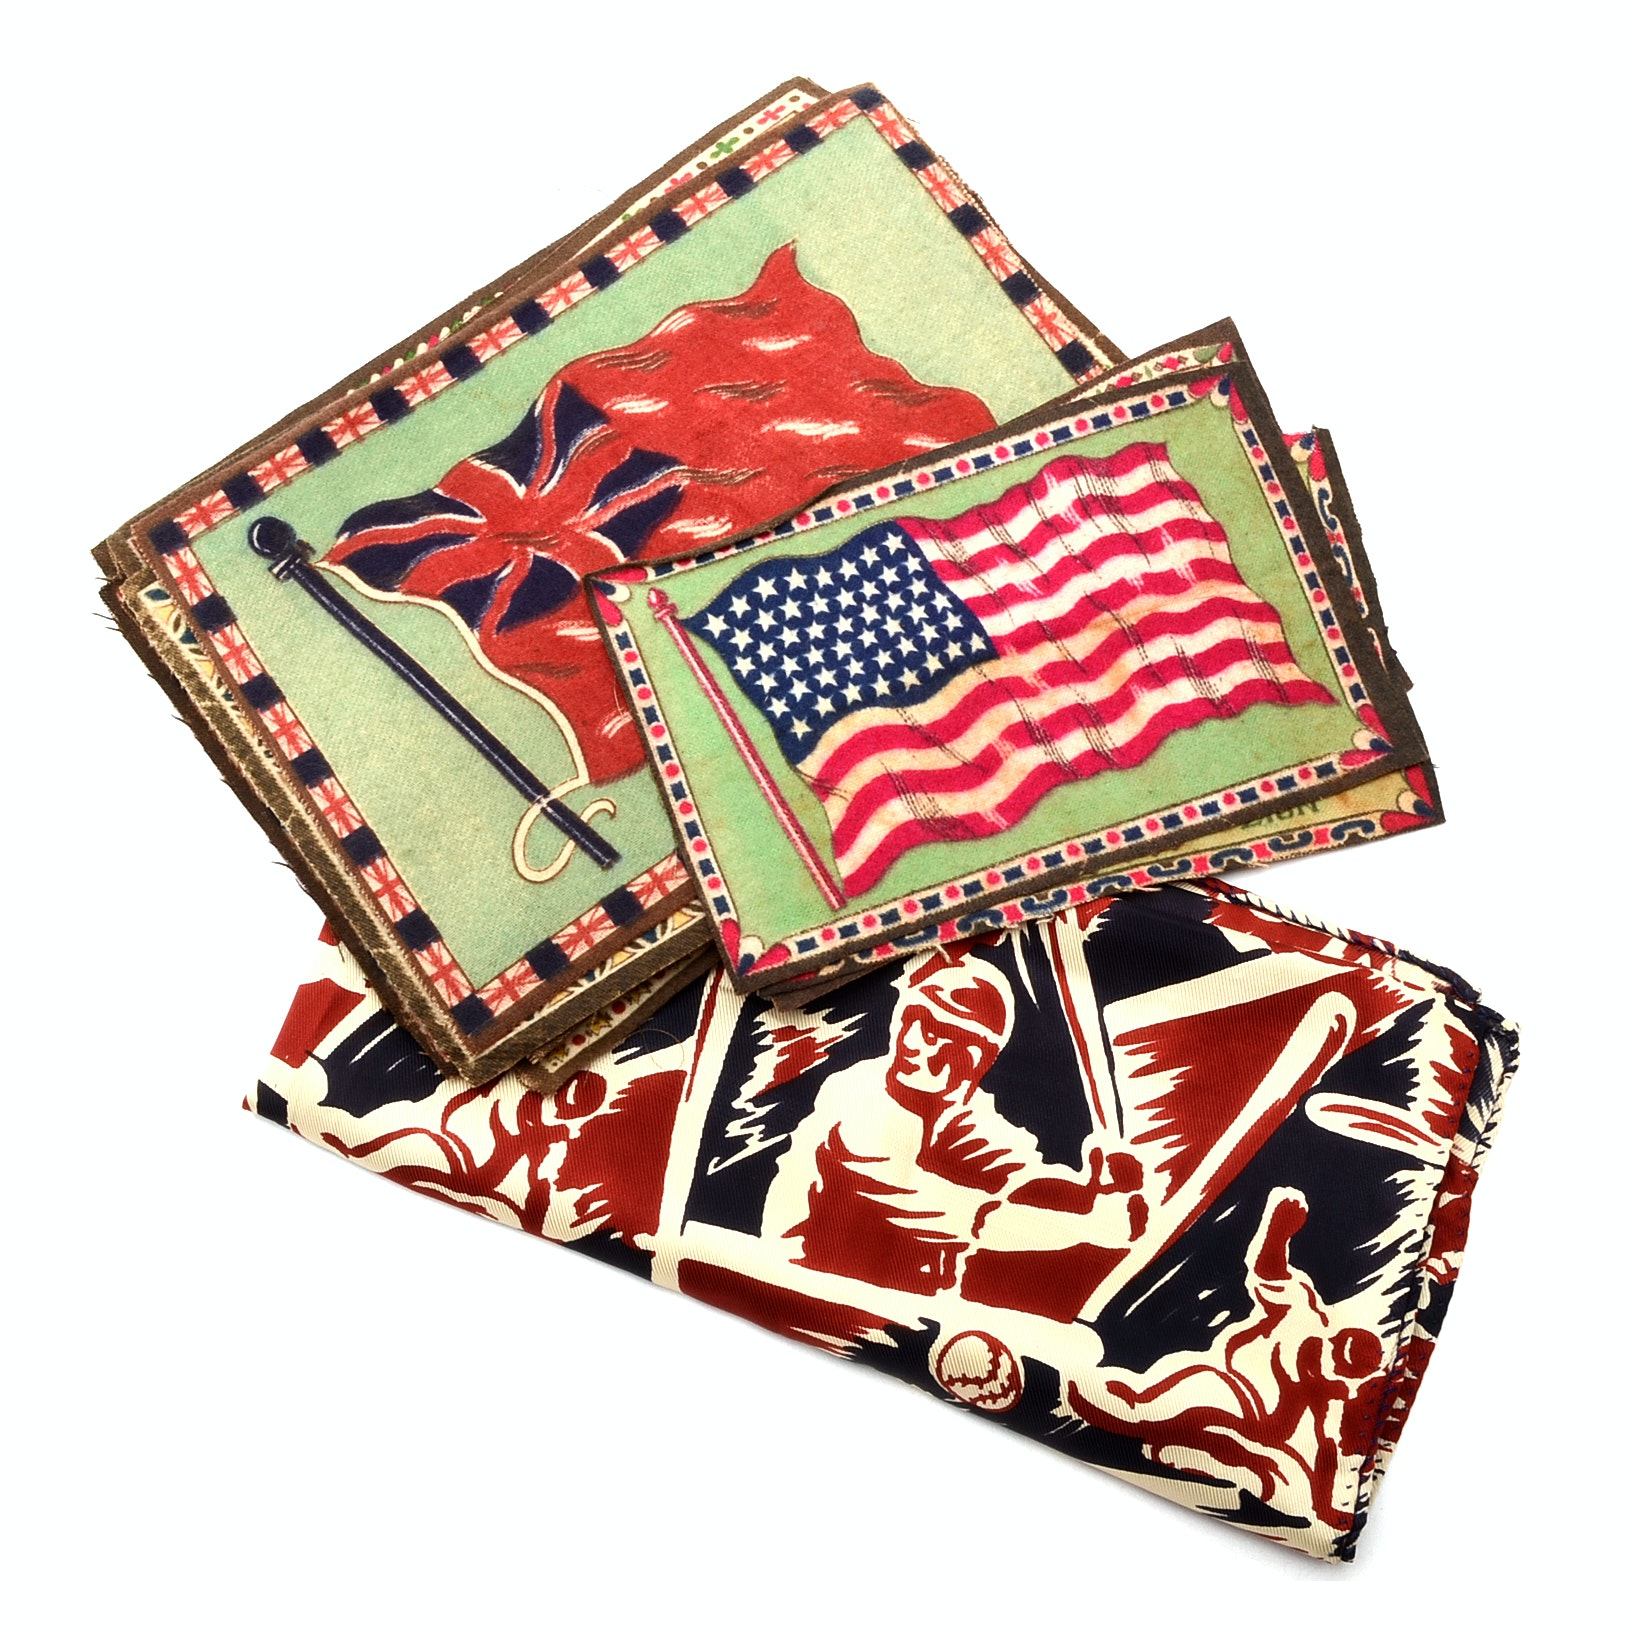 Collection of Vintage Cigar Box Felts with Flags